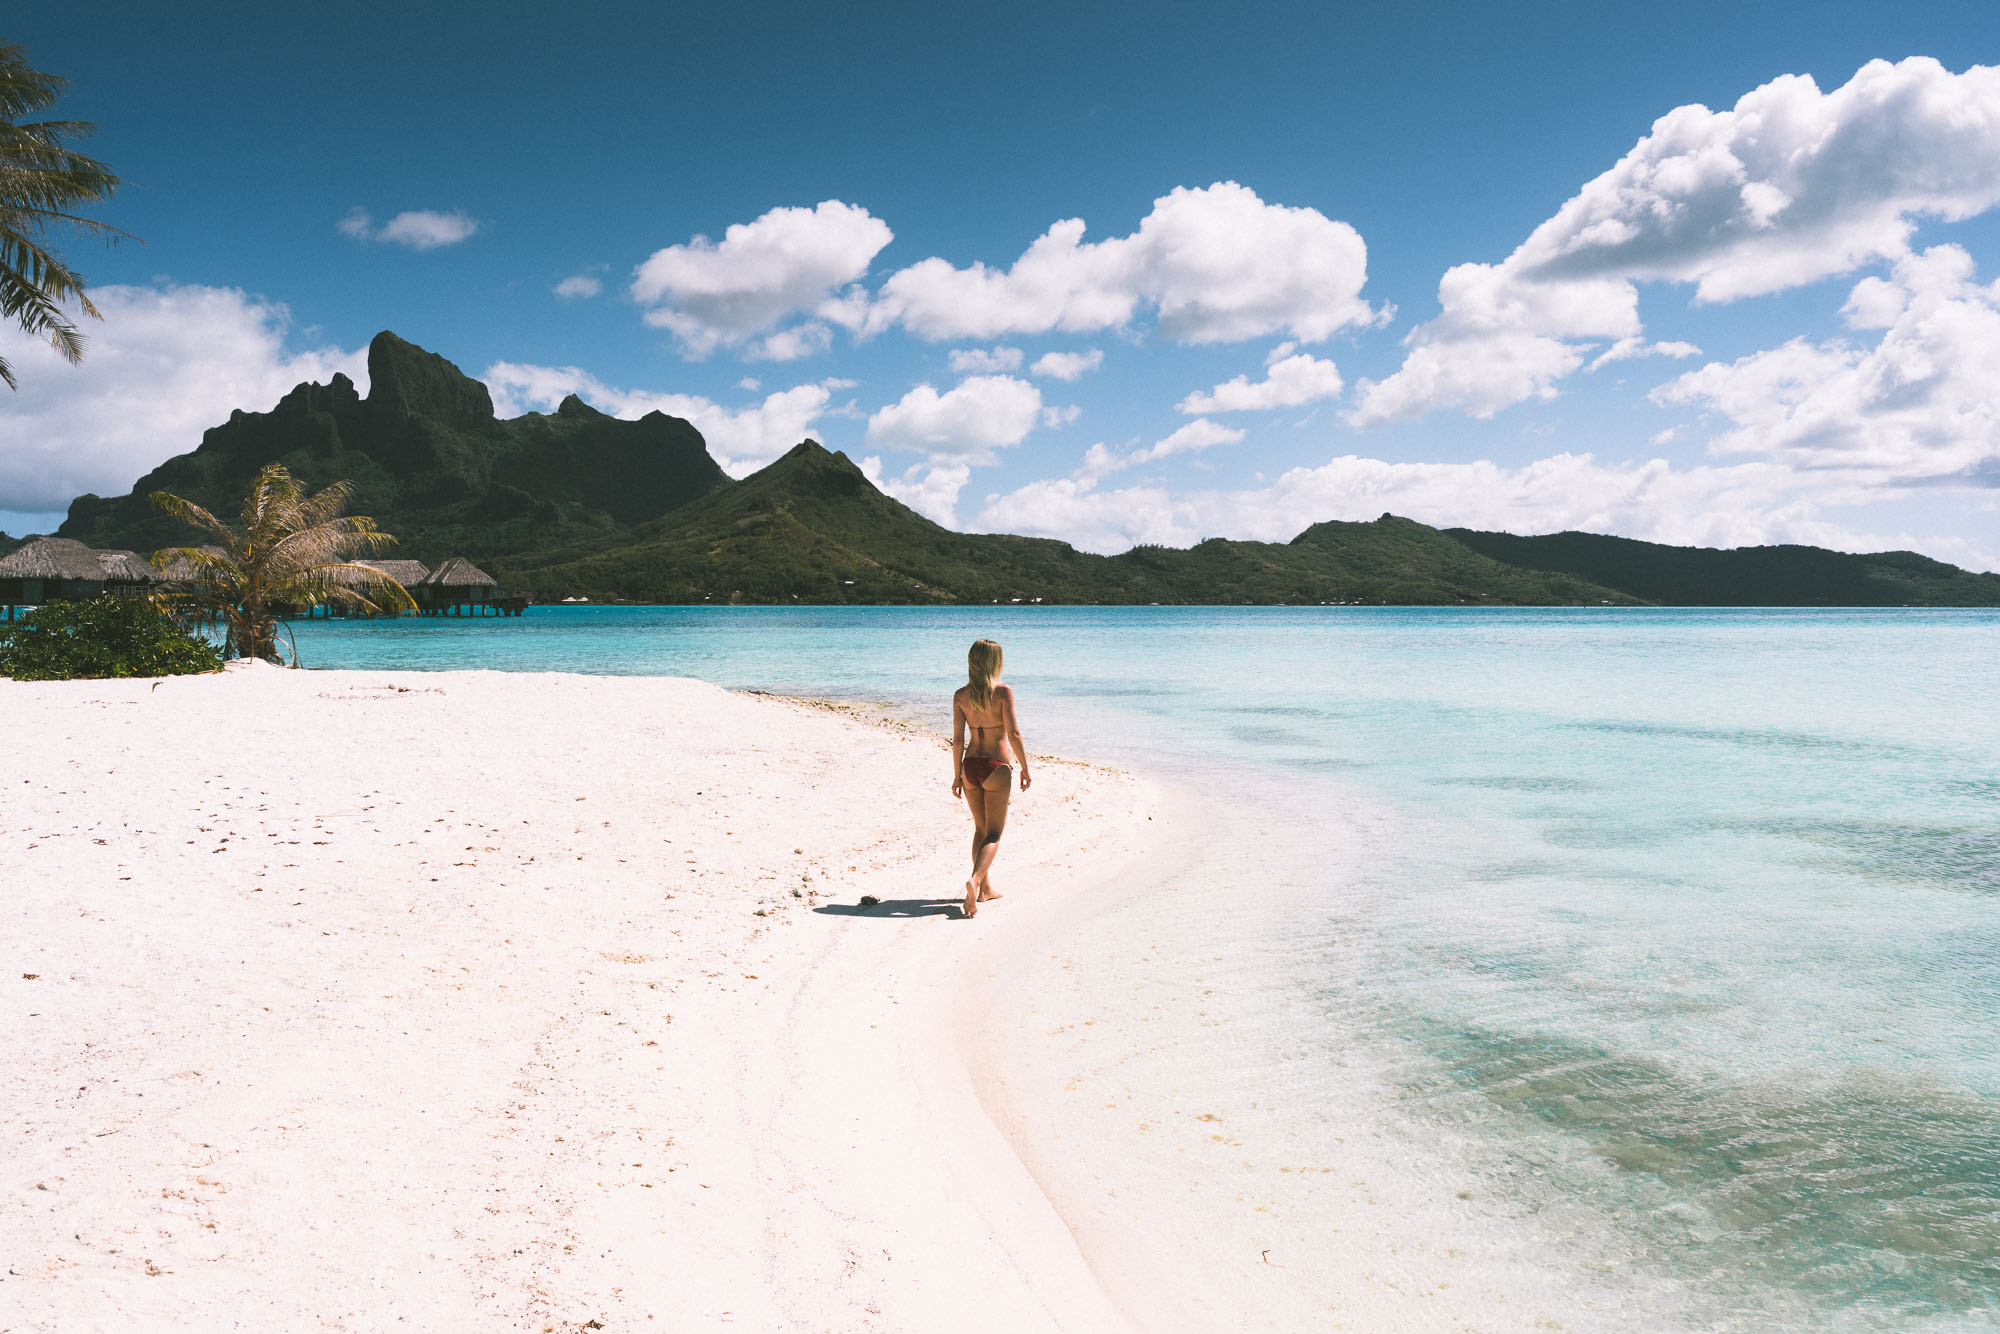 Honeymooning at Four Seasons Resort Bora Bora in Tahiti via @finduslost